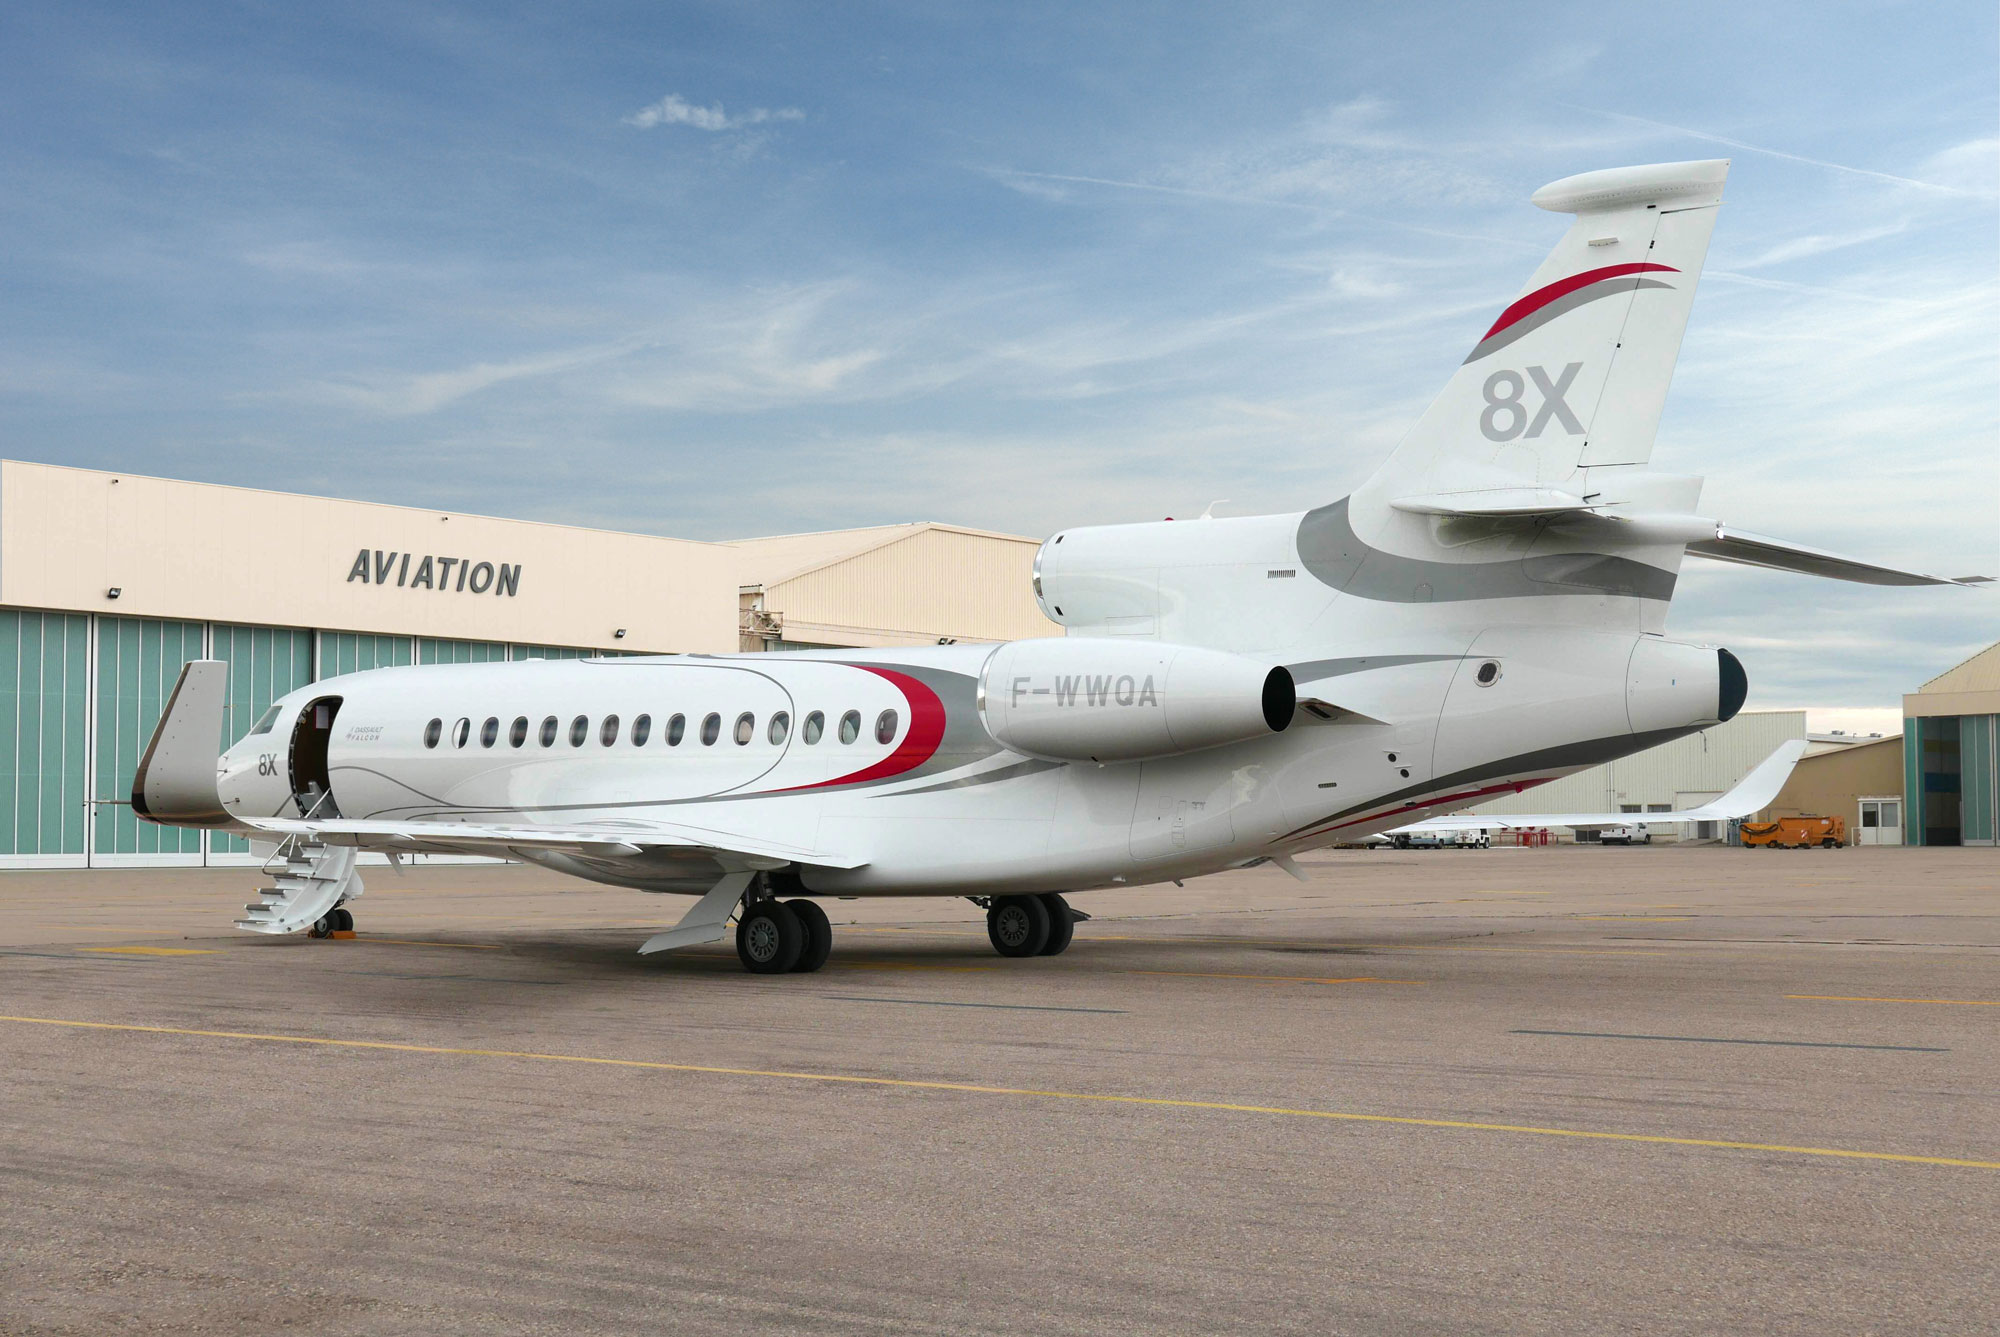 Dassault Begins Completions On Initial Falcon 8x Jets